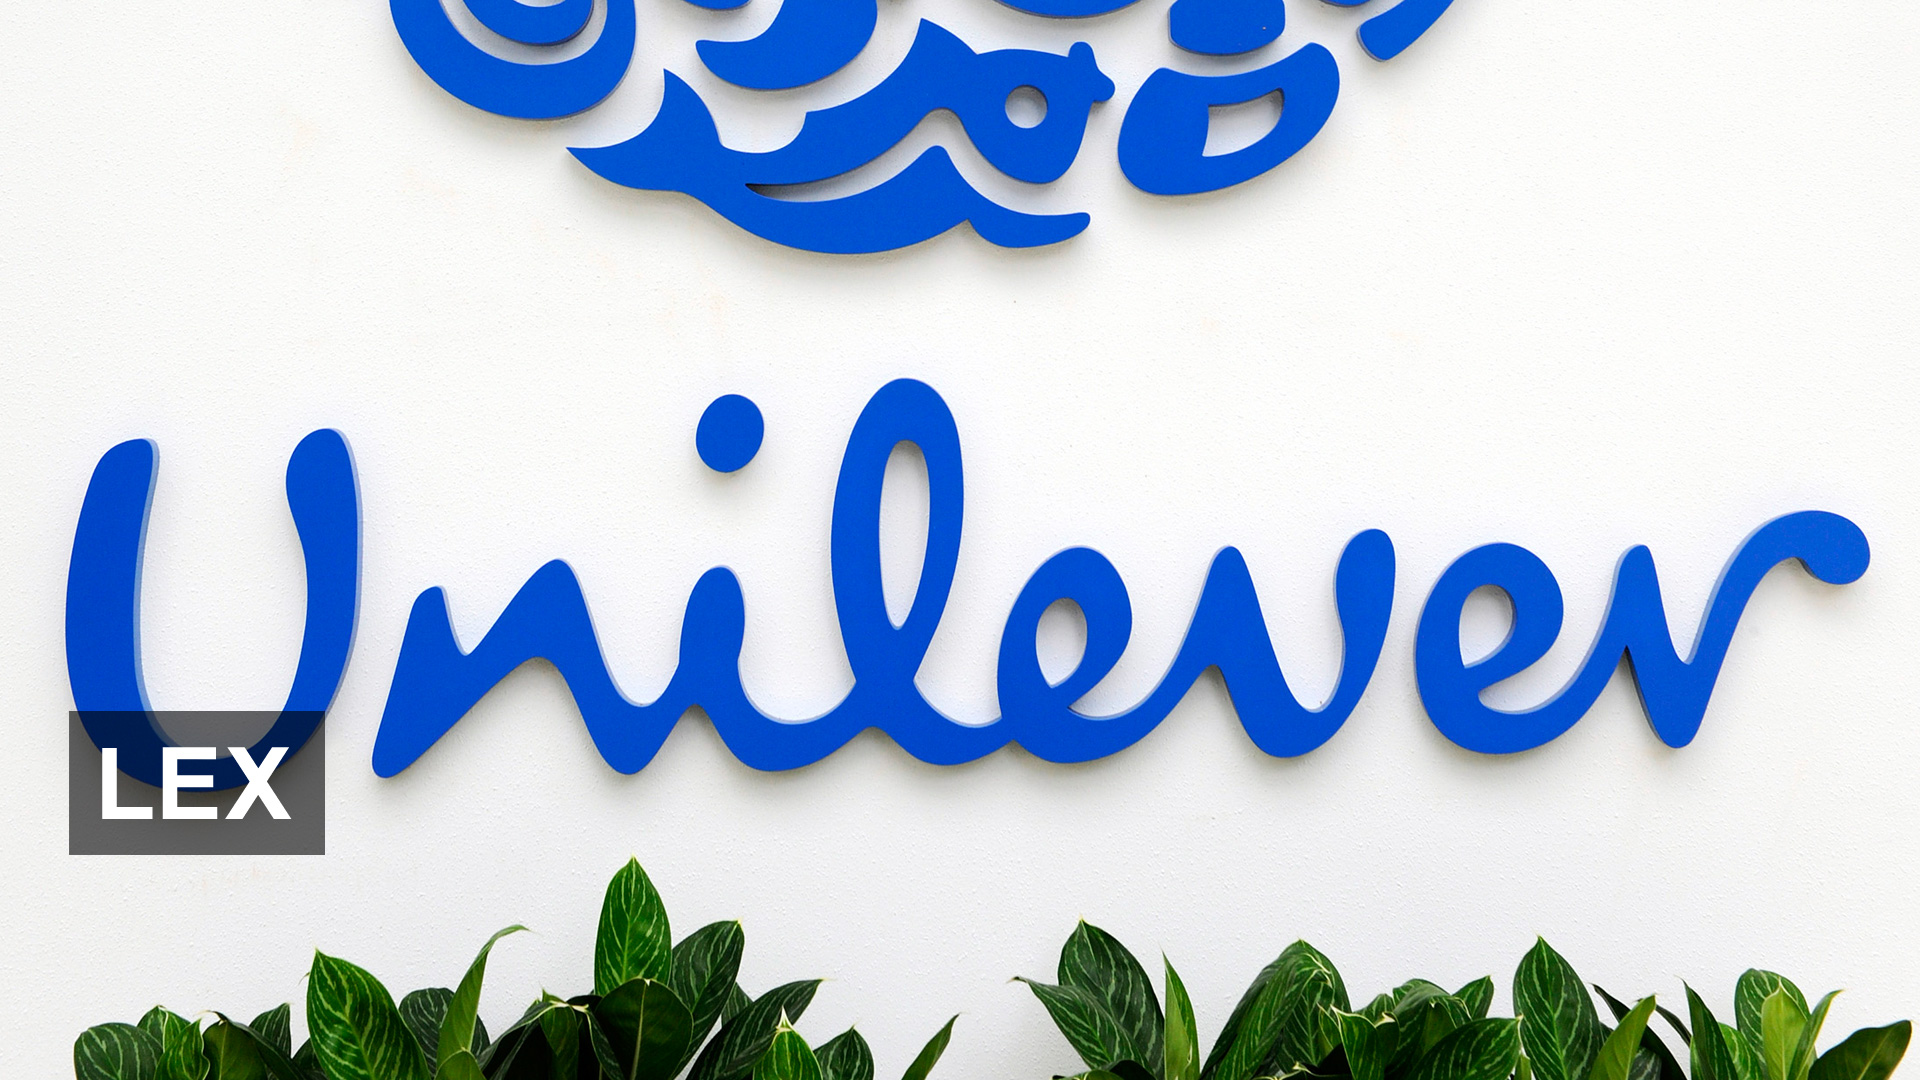 Unilever pledges to invest €1bn in eliminating fossil fuels from cleaning products by 2030